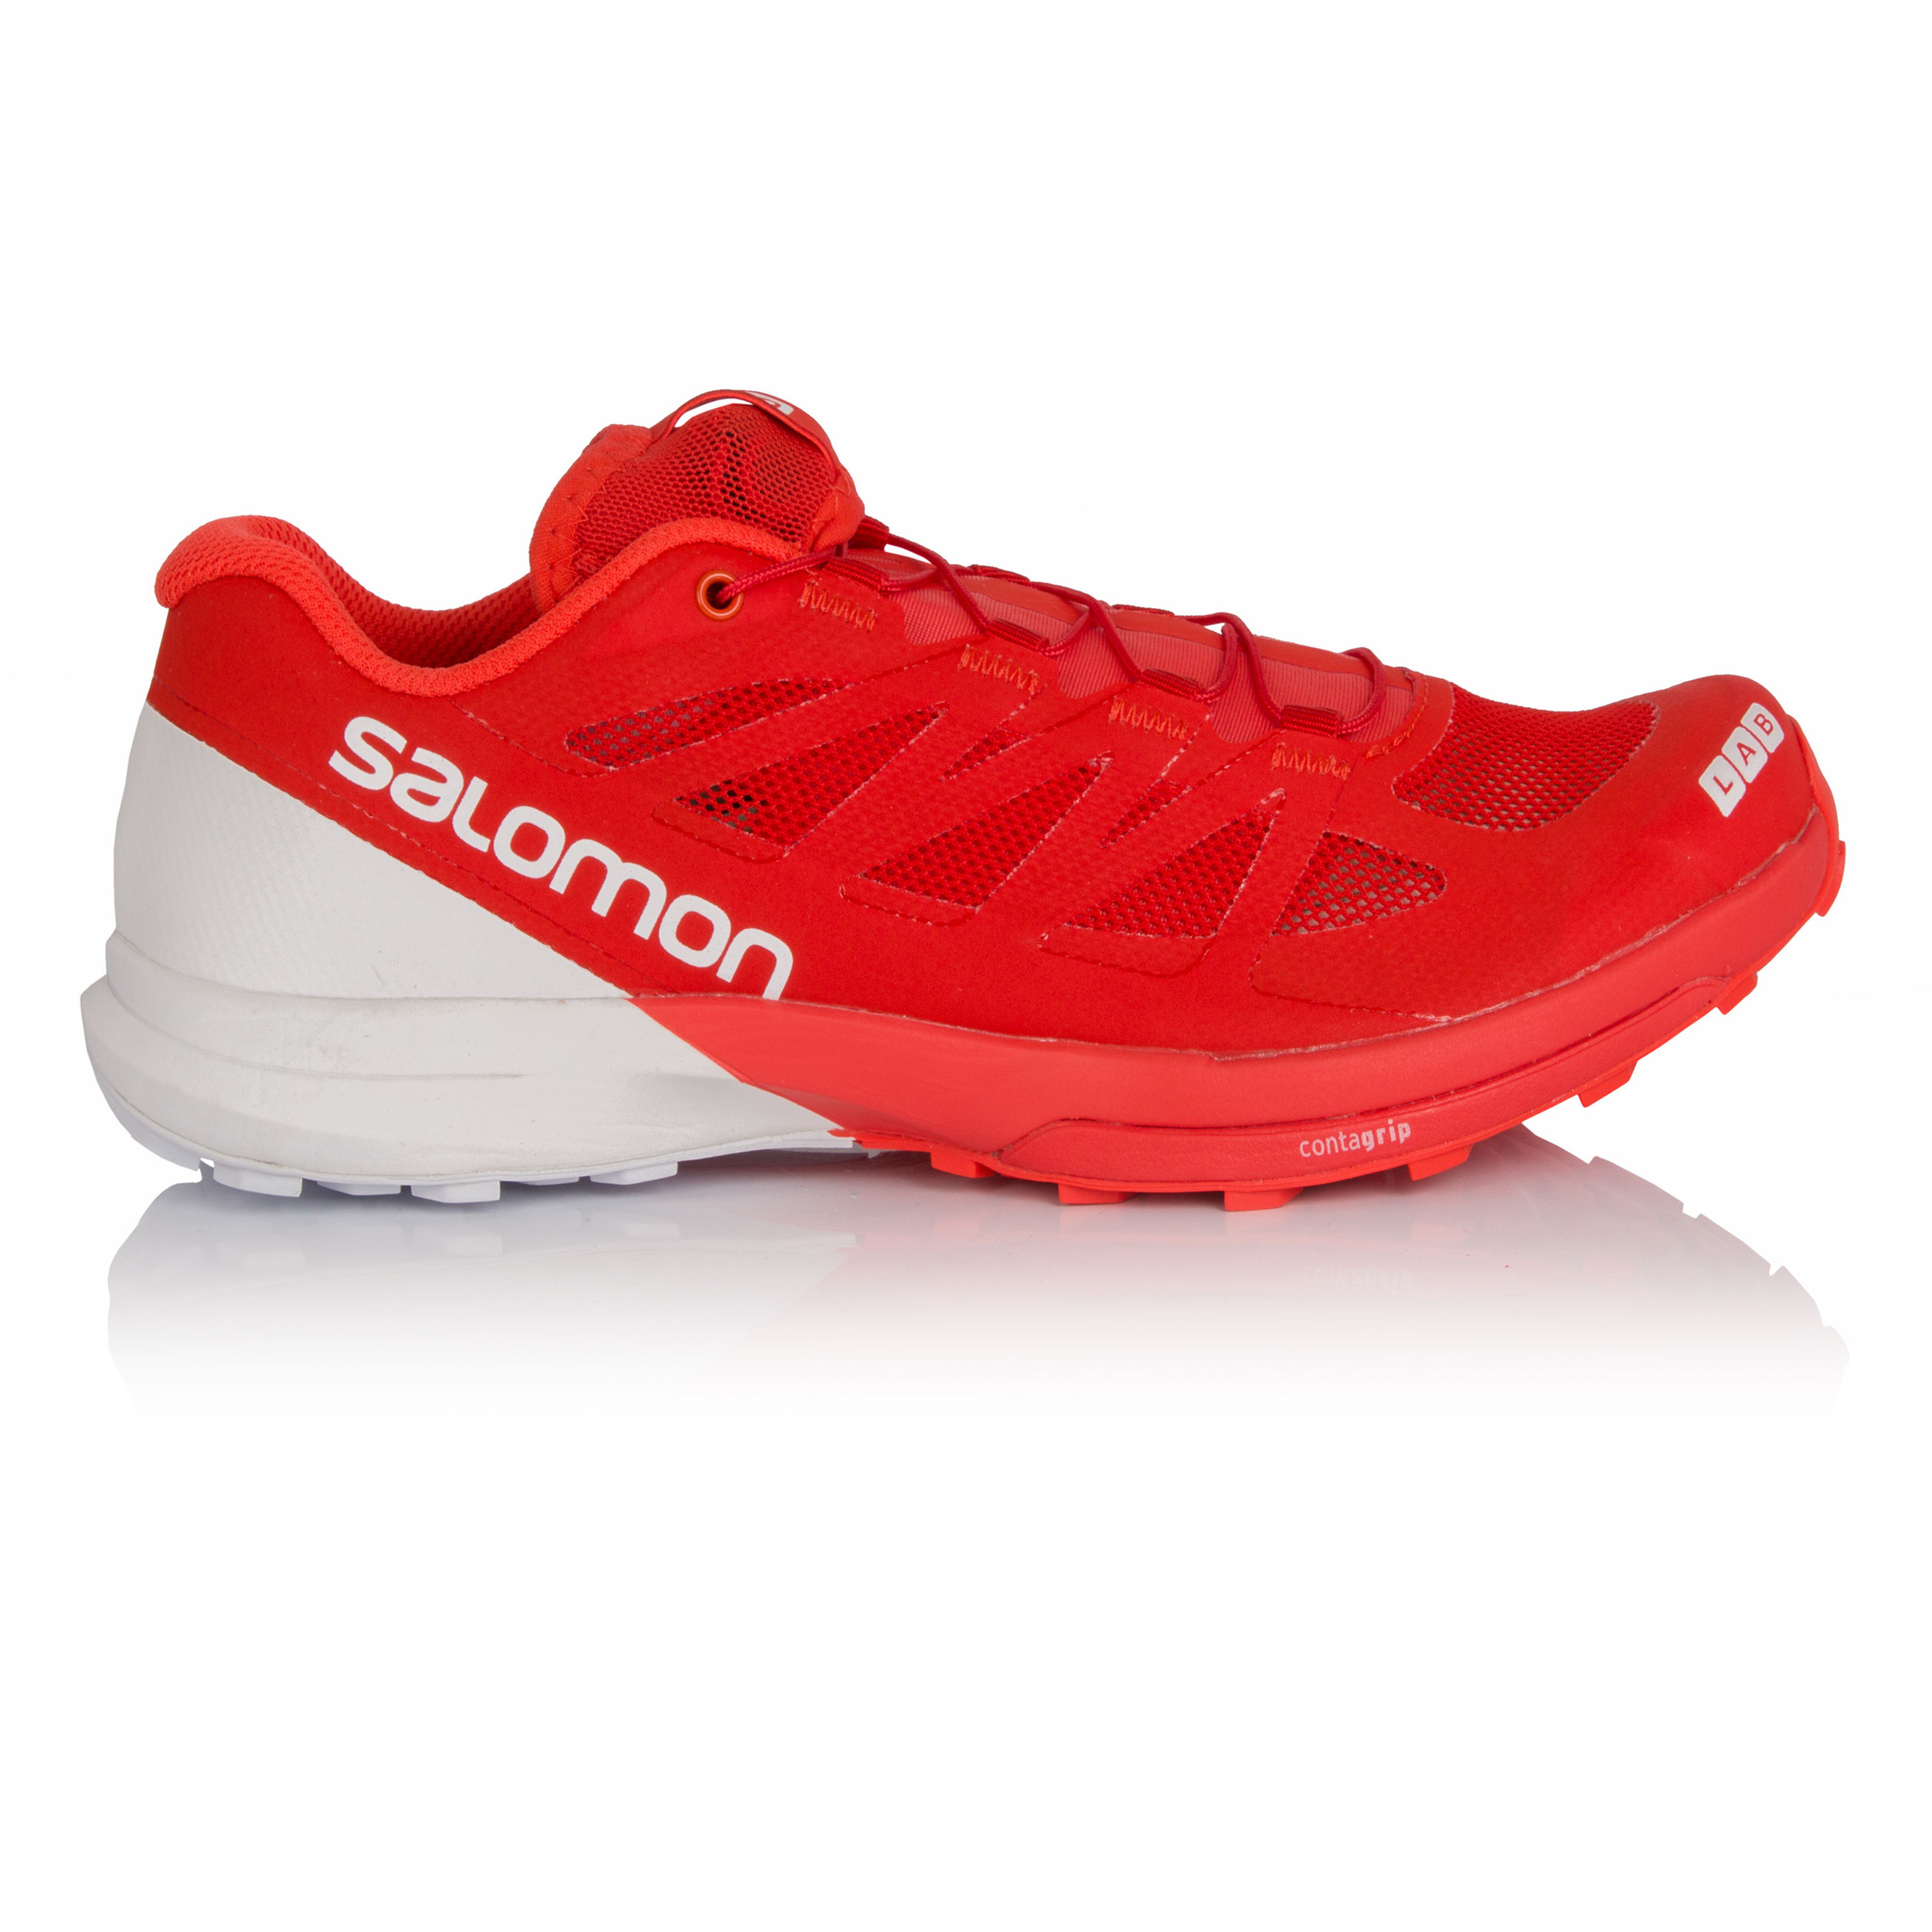 new arrival 17553 25969 Details about Salomon S-Lab Sense 6 Unisex Red Trail Running Sports Shoes  Trainers Pumps